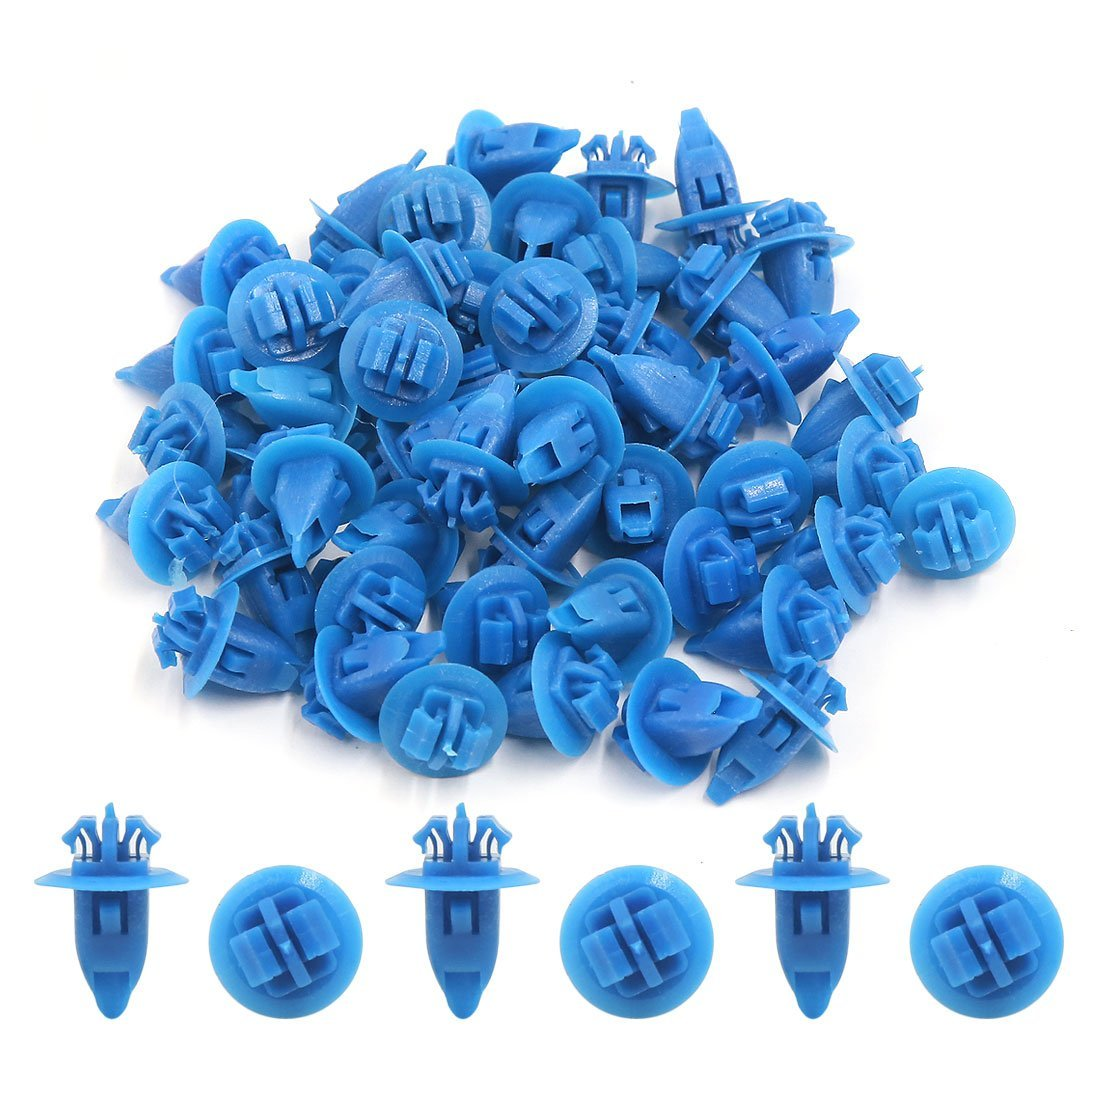 Amazon.com: eDealMax Clips 50Pcs remaches de plástico de ruedas Ala Fender llamarada Azul guarnecido del paso de Molduras DE 8 x 11 mm: Automotive